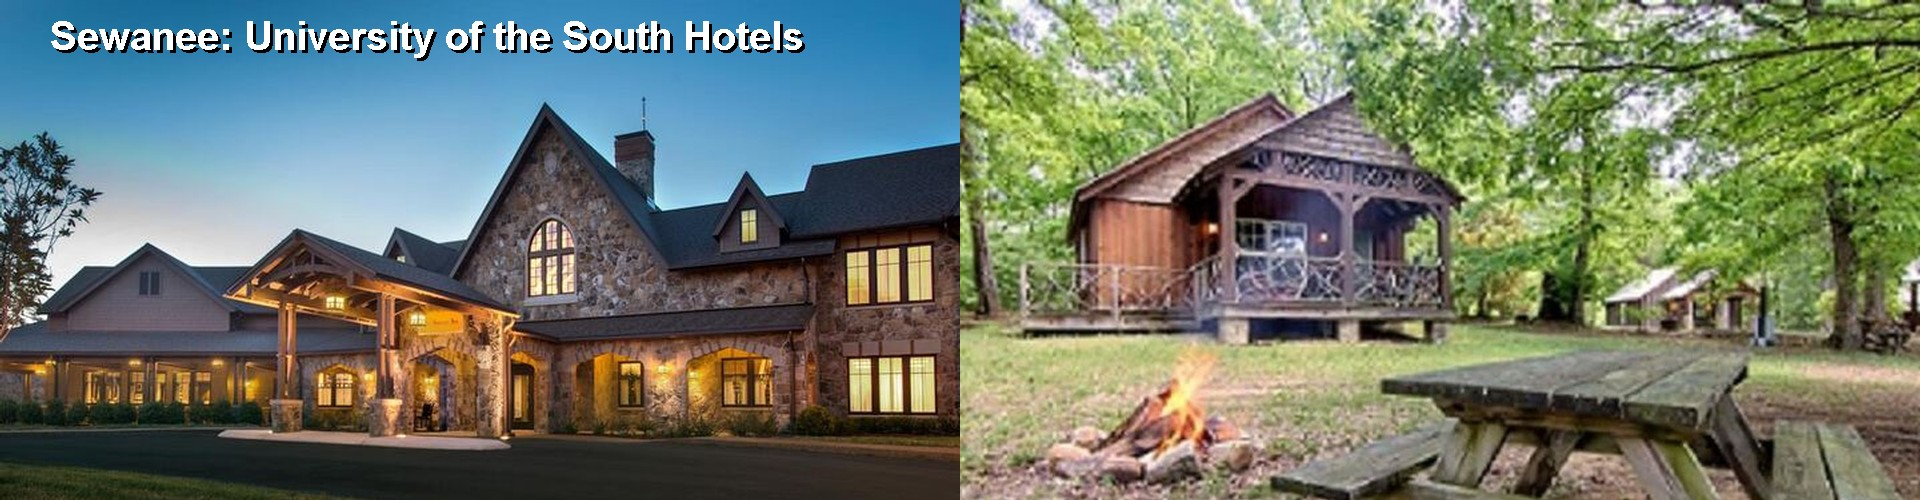 5 Best Hotels near Sewanee: University of the South